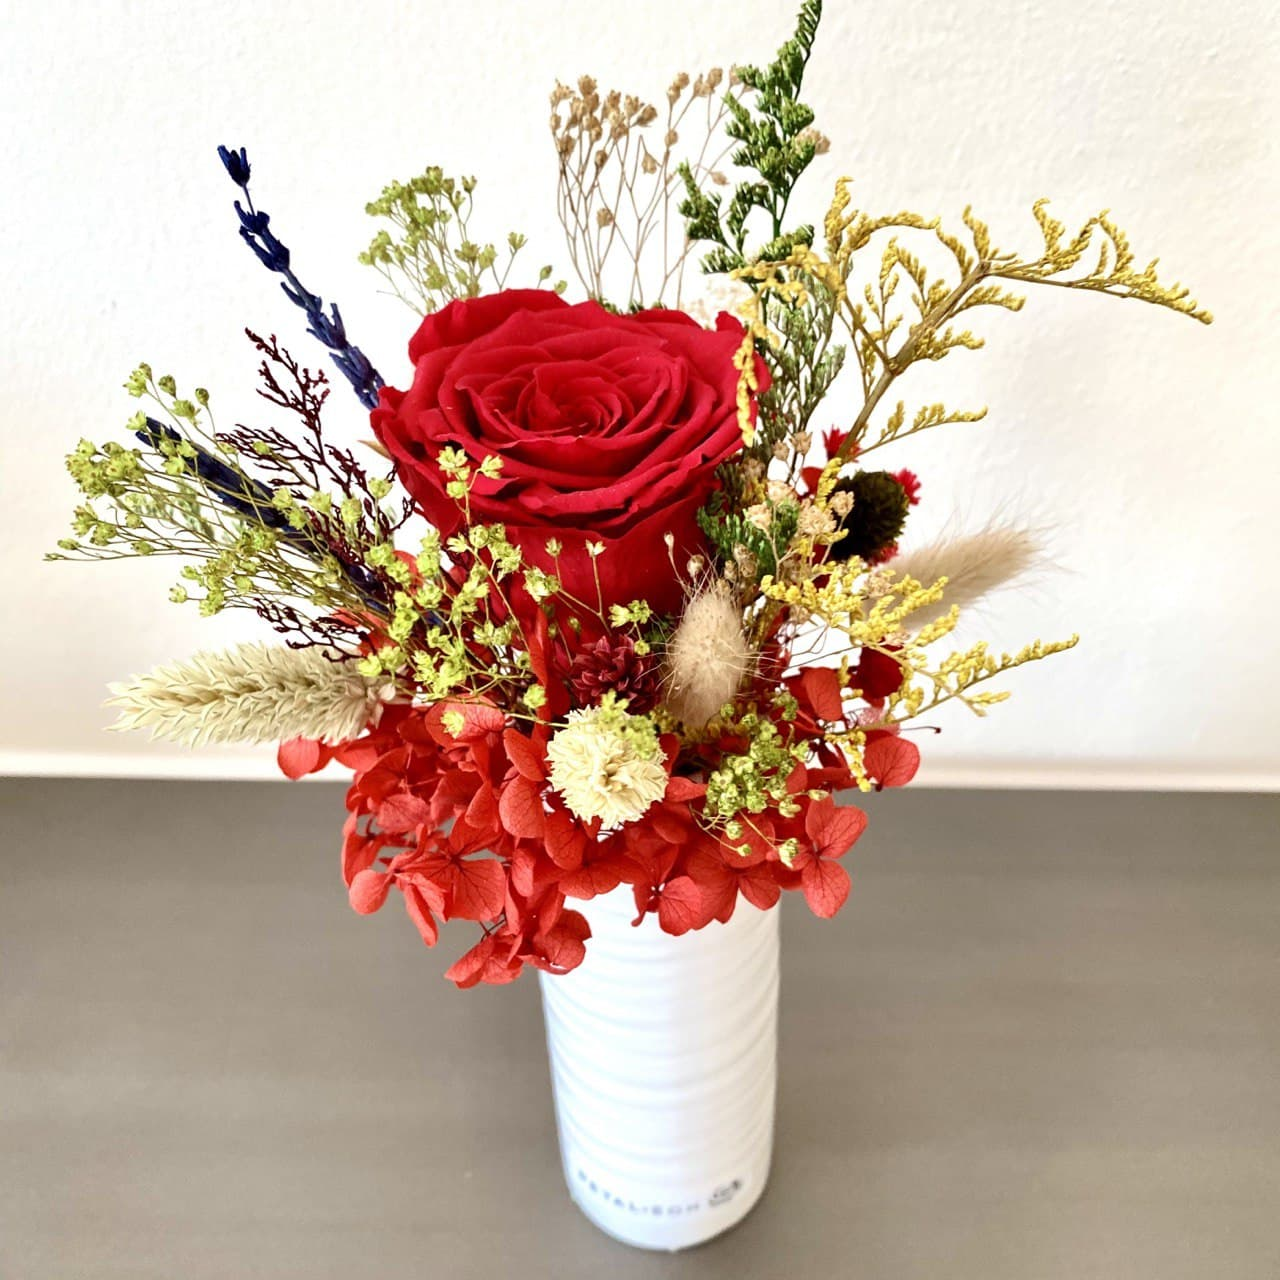 Roman Candle floral kit (multiple color schemes)